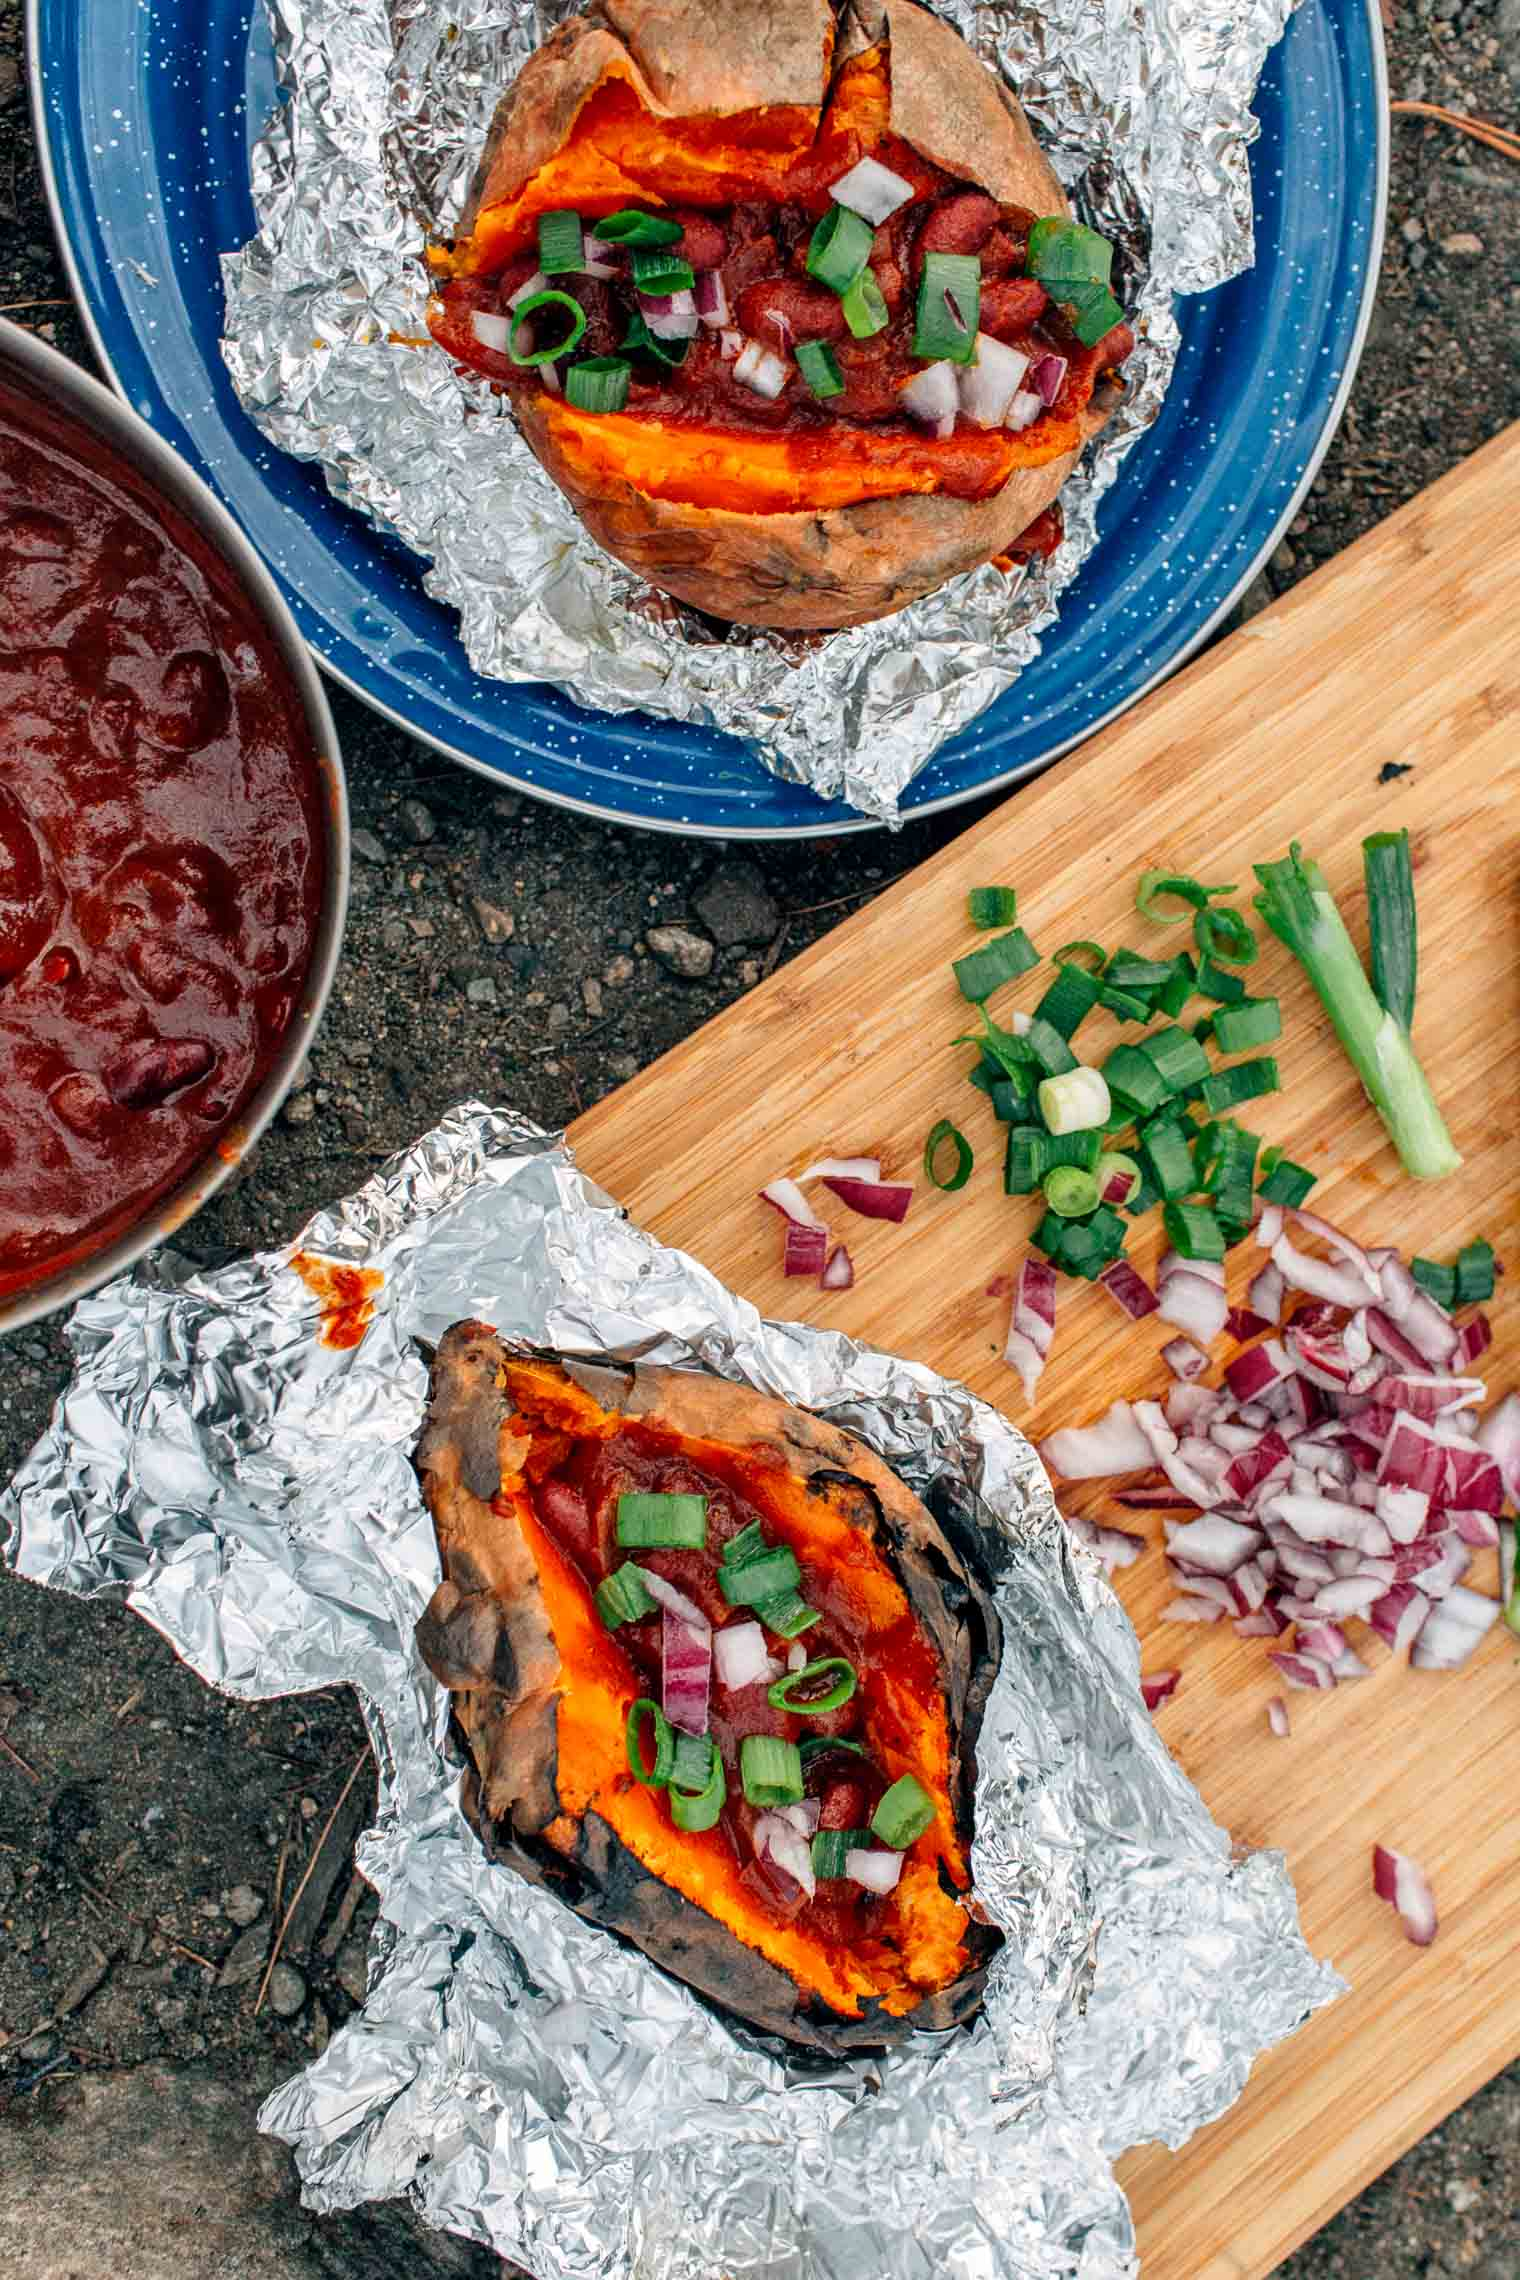 Foil wrapped sweet potatoes and chili on a blue camping plate.